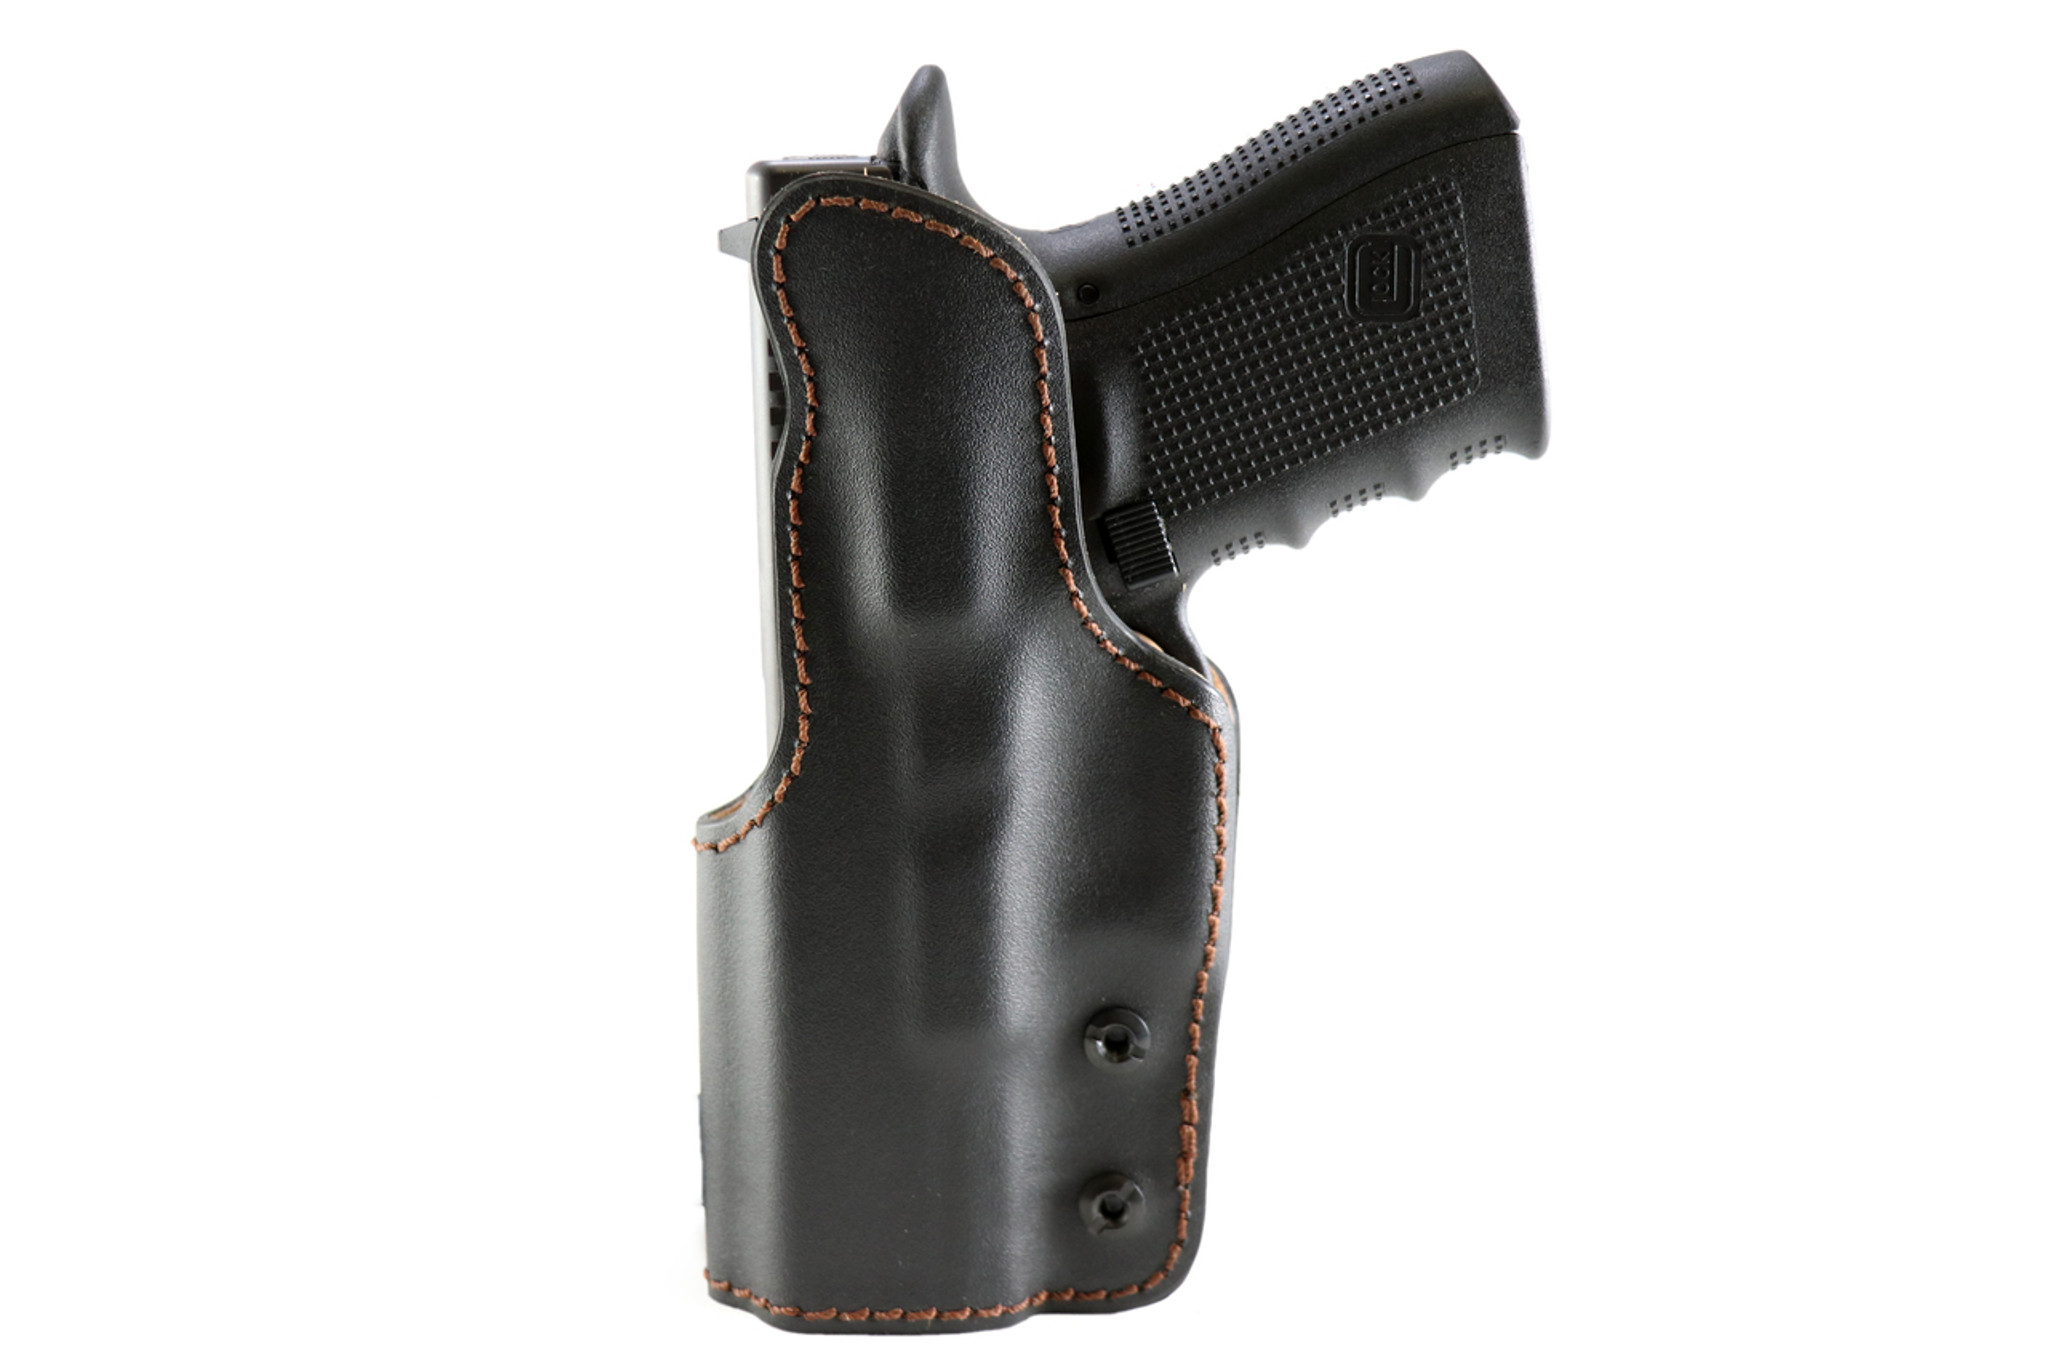 Holsters, Belts & Pouches Sporting Goods Leather Pancake Owb Holster For Walther P99 Black Made In Usa Beautiful In Colour